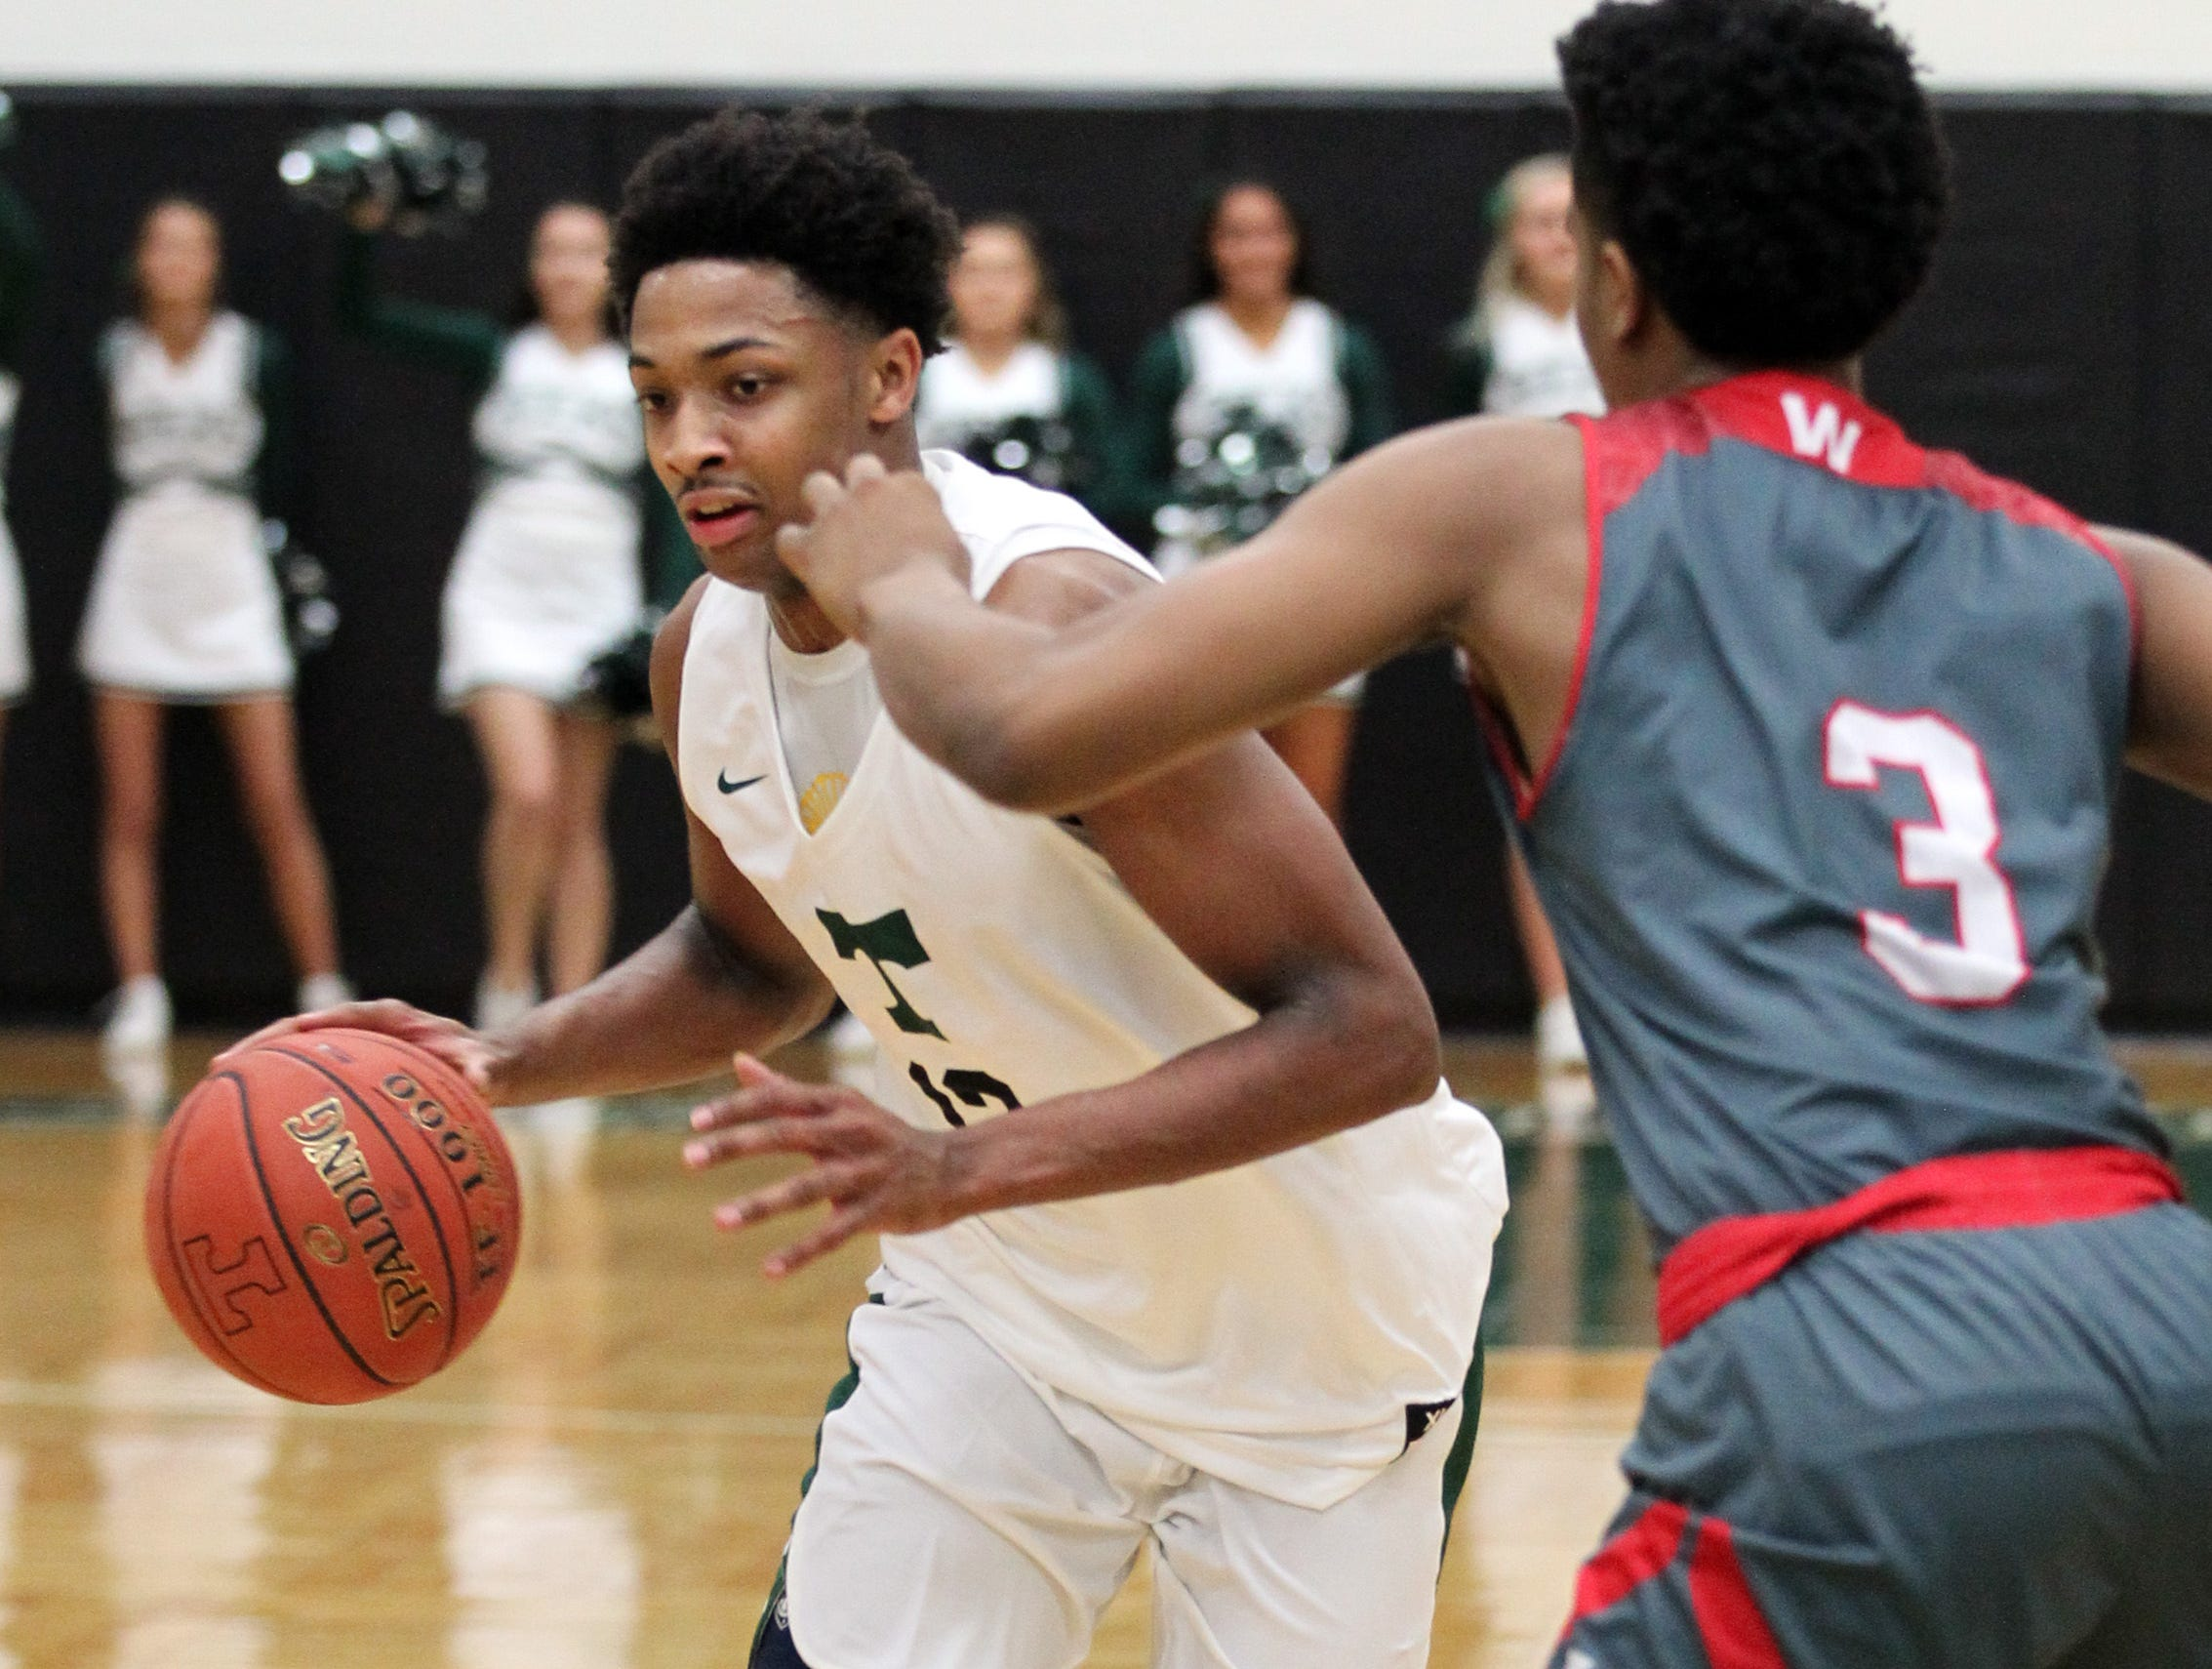 Trinity High School's David Johnson (13) fights pressure from Waggener High School's Dallas Rufus (3) during the first half of play at Trinity High School on Jan. 11,  2019.